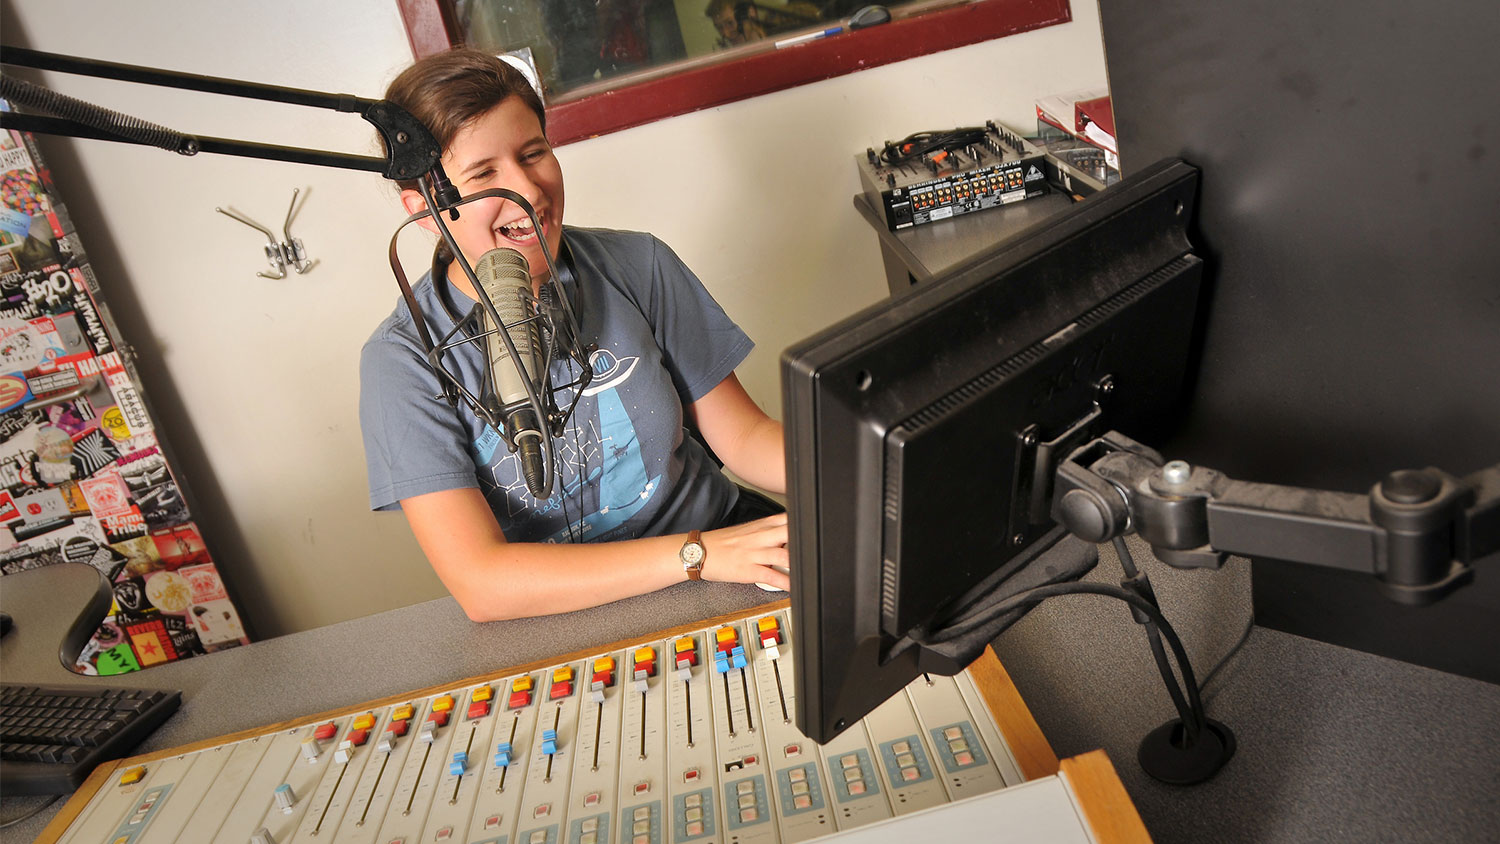 Student in front of a microphone recording.